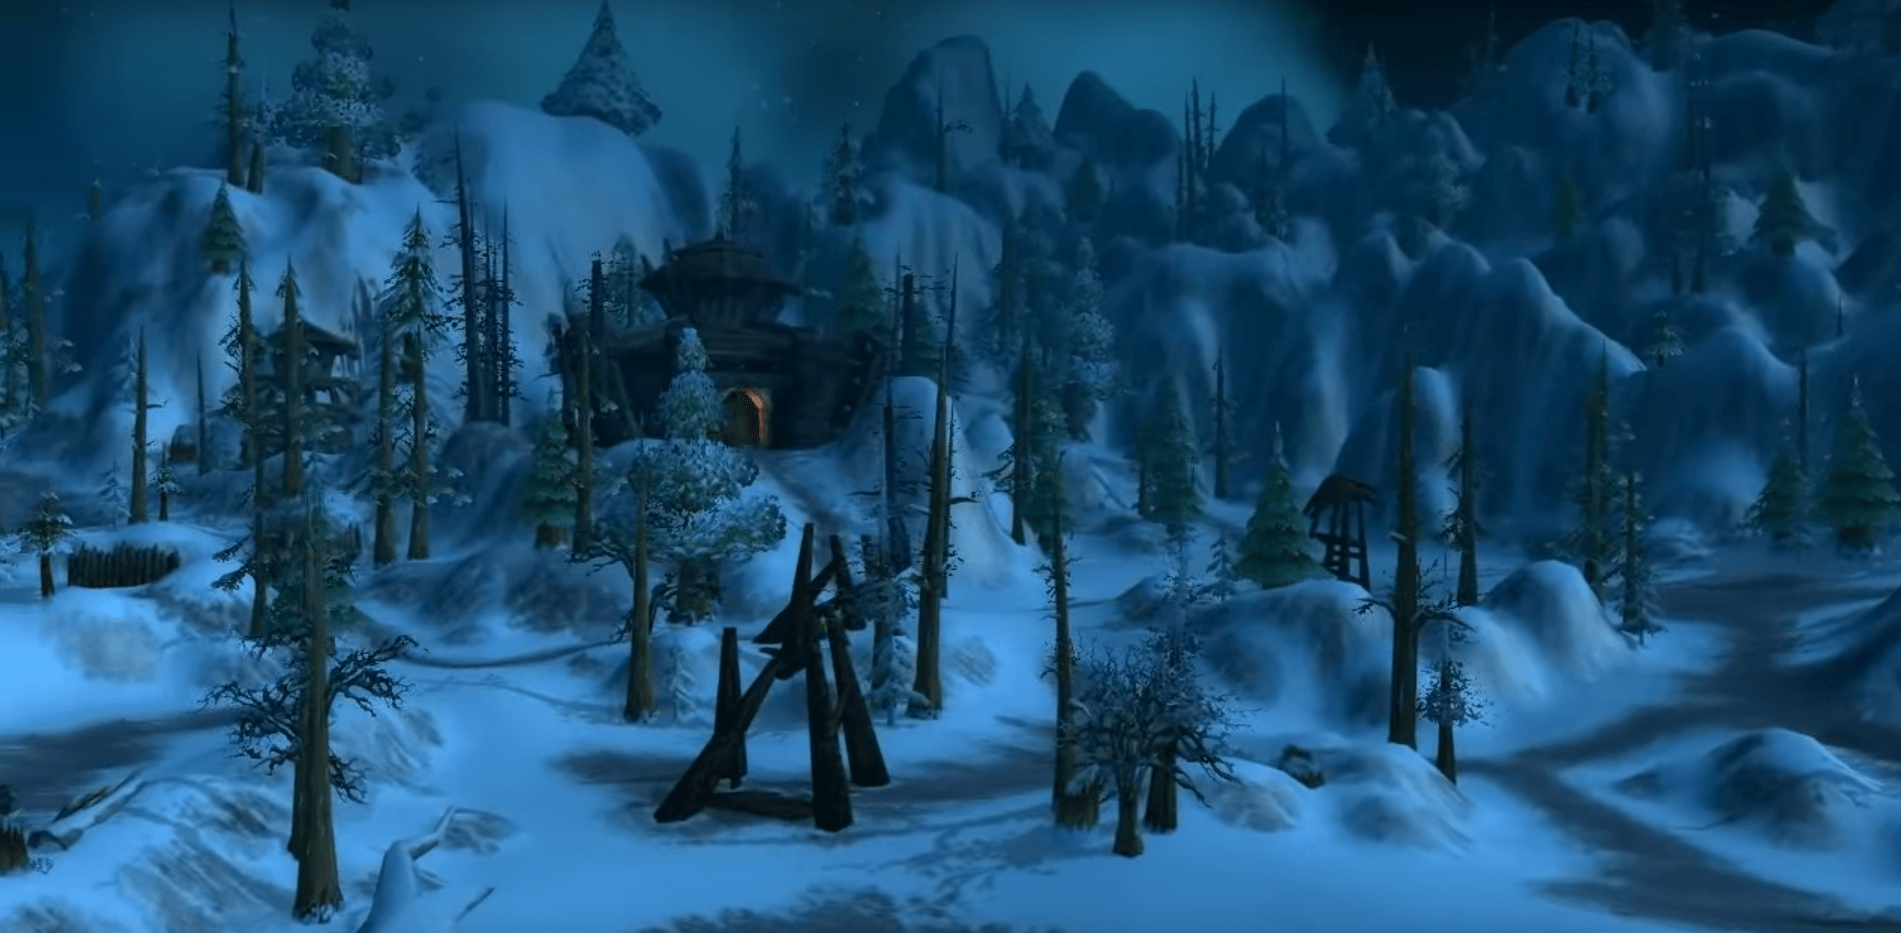 World Of Warcraft: Classic Is Adding The Battlegrounds Alterac Valley And Warsong Gulch In Early December